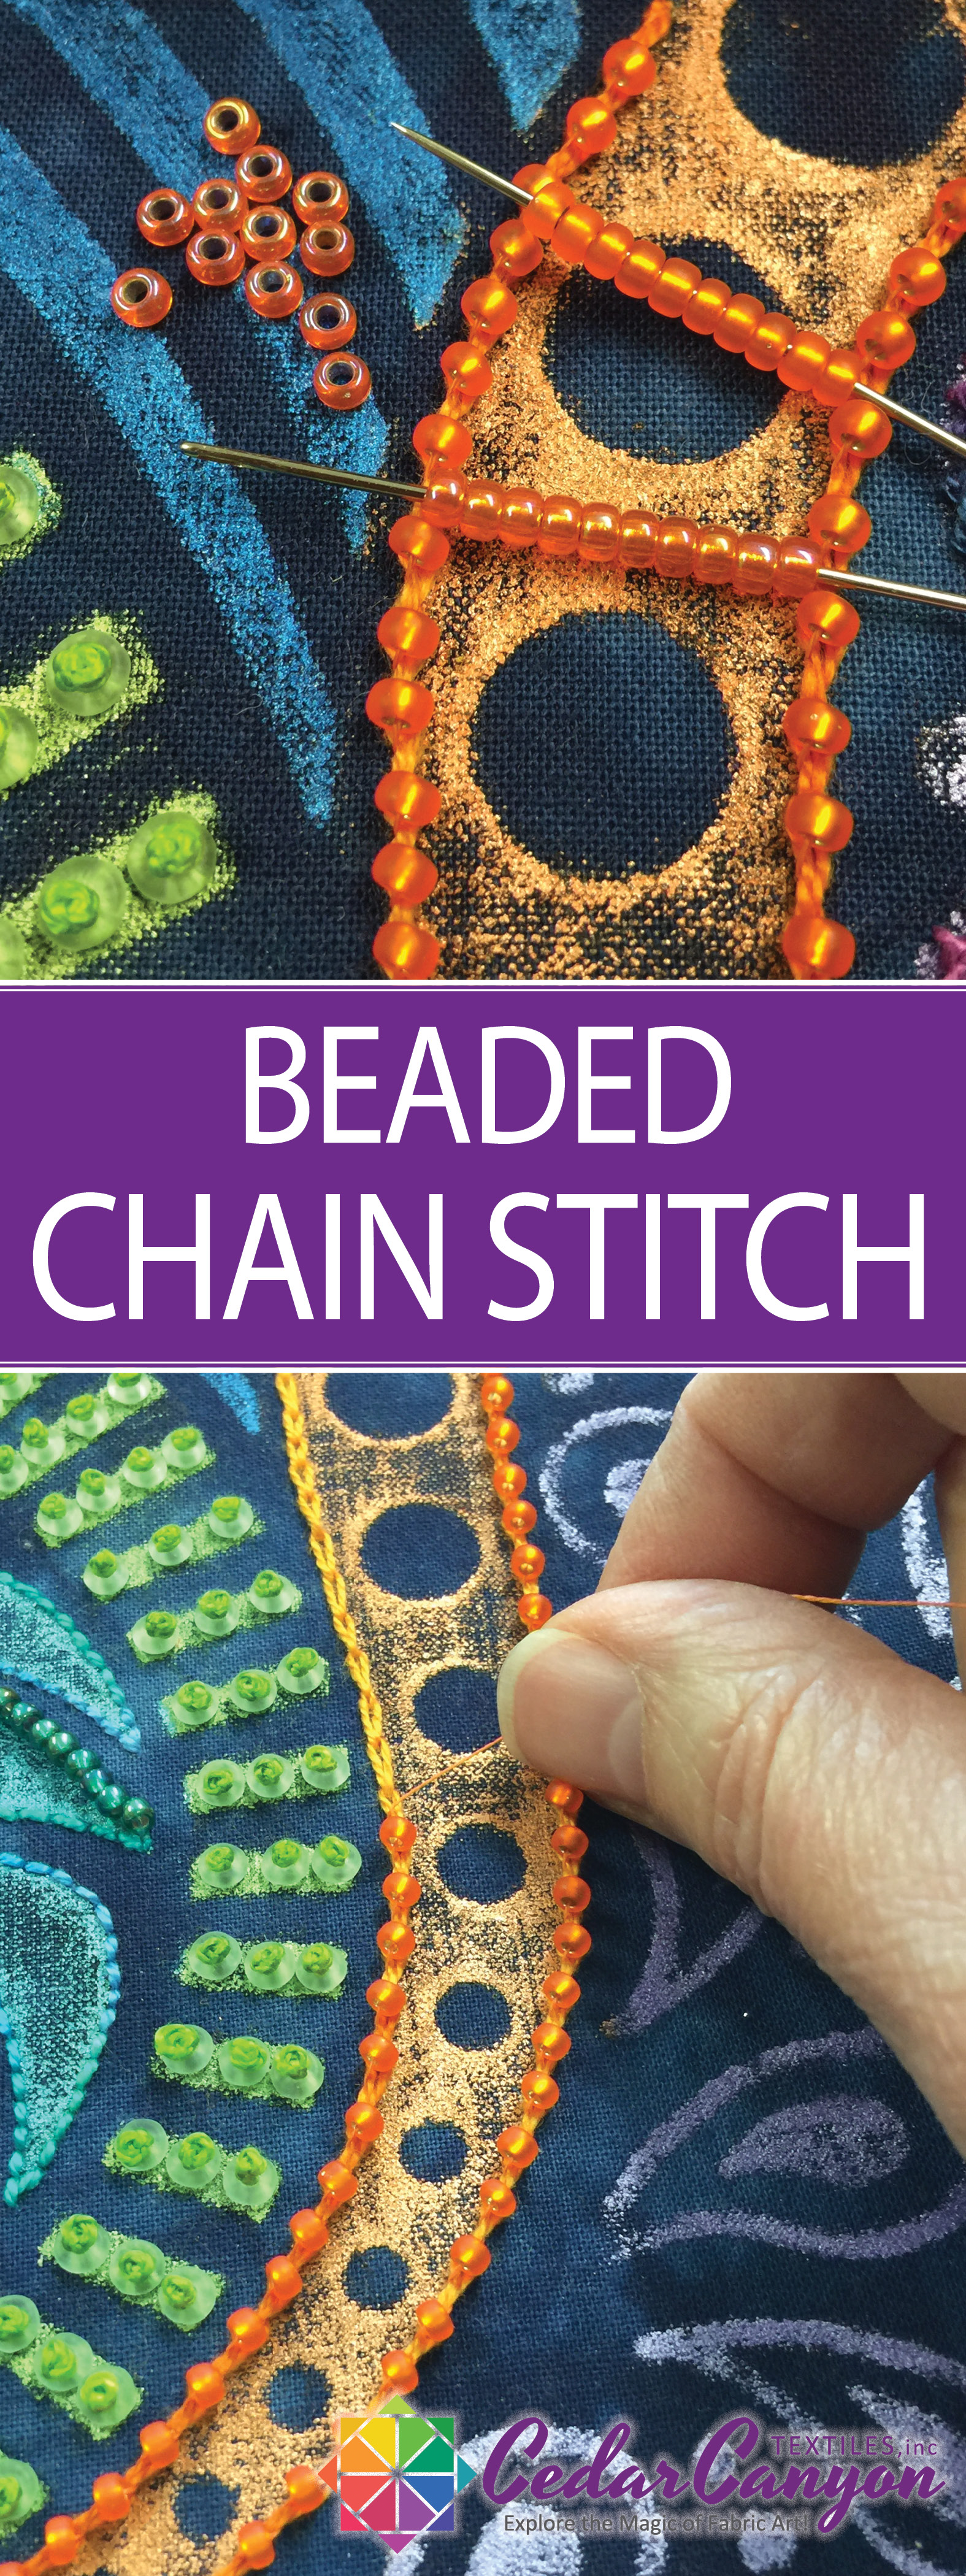 Beaded-Chain-Stitch-PIN